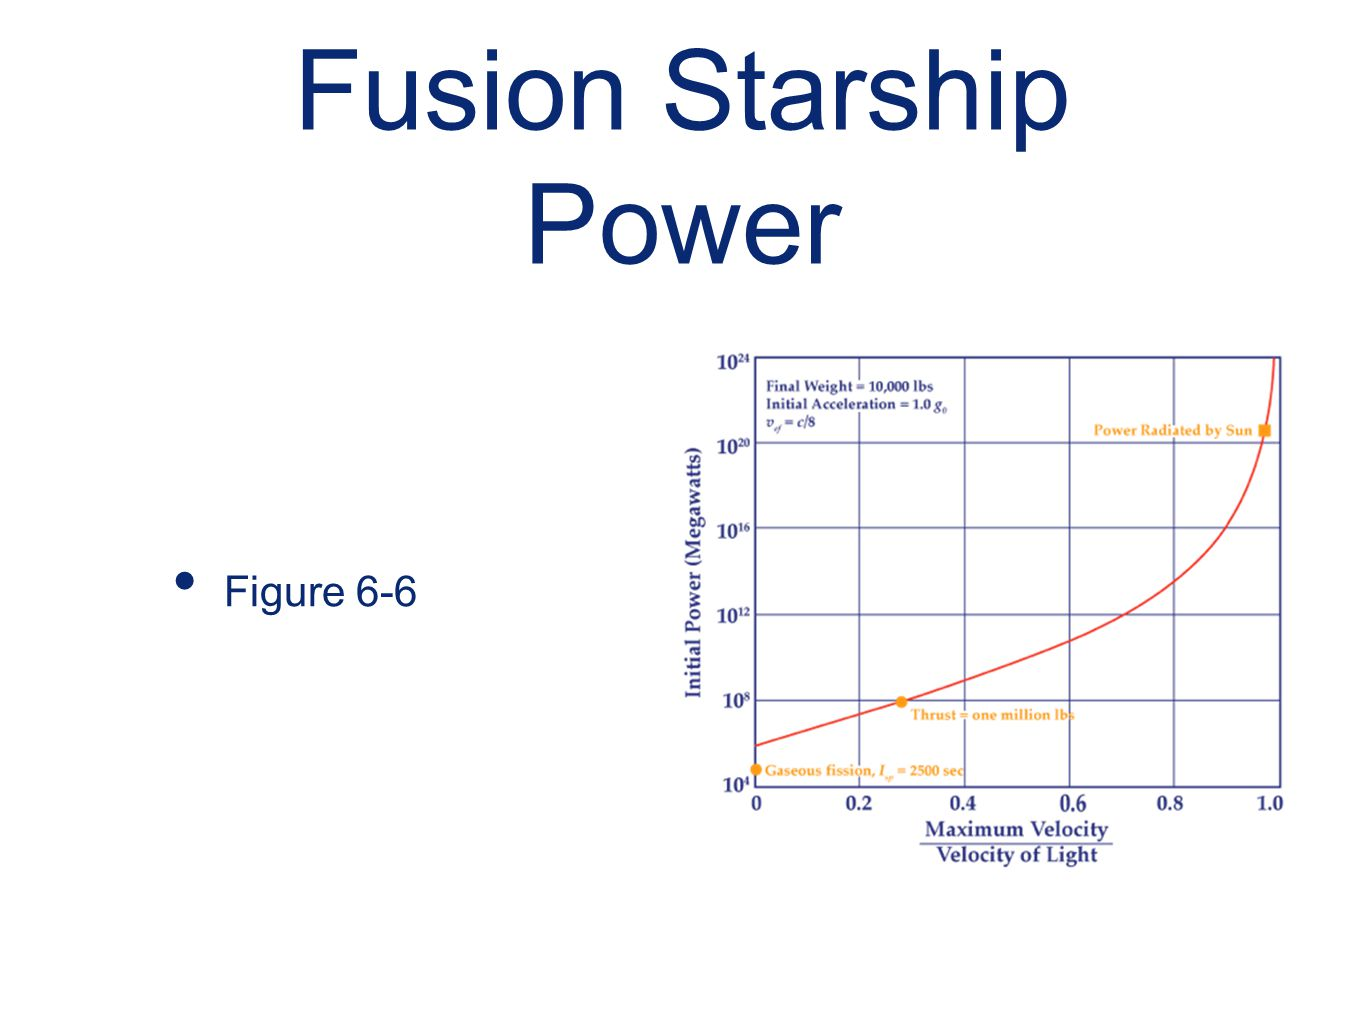 Fusion Starship Power Figure 6-6